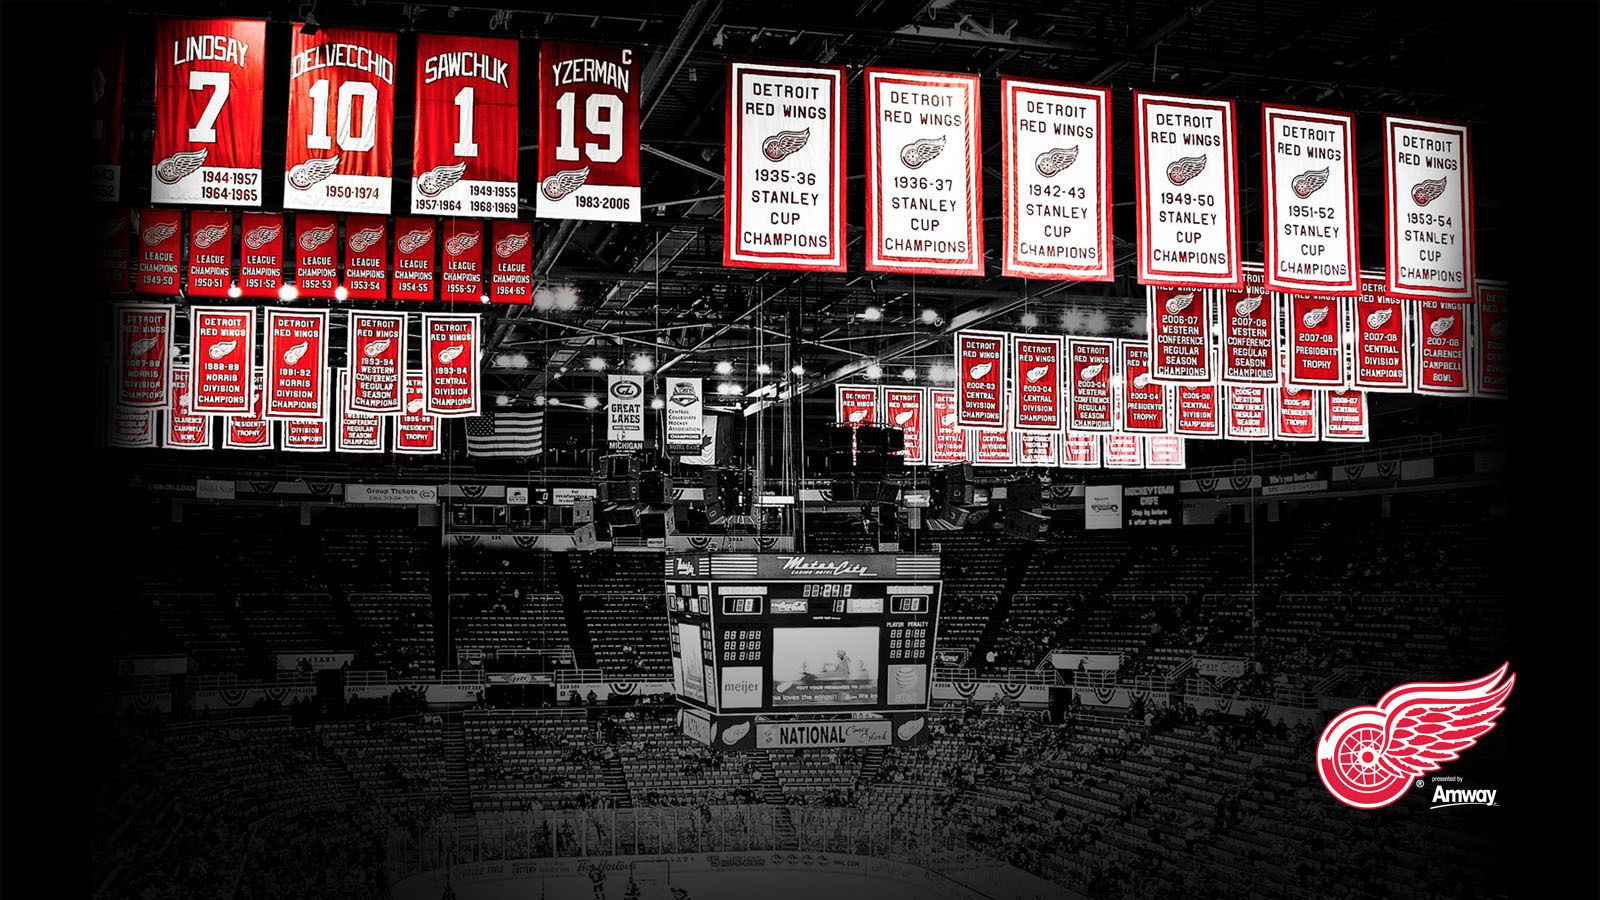 On reconstruie a VAN - Page 3 Detroit-red-wings-wallpaper-38